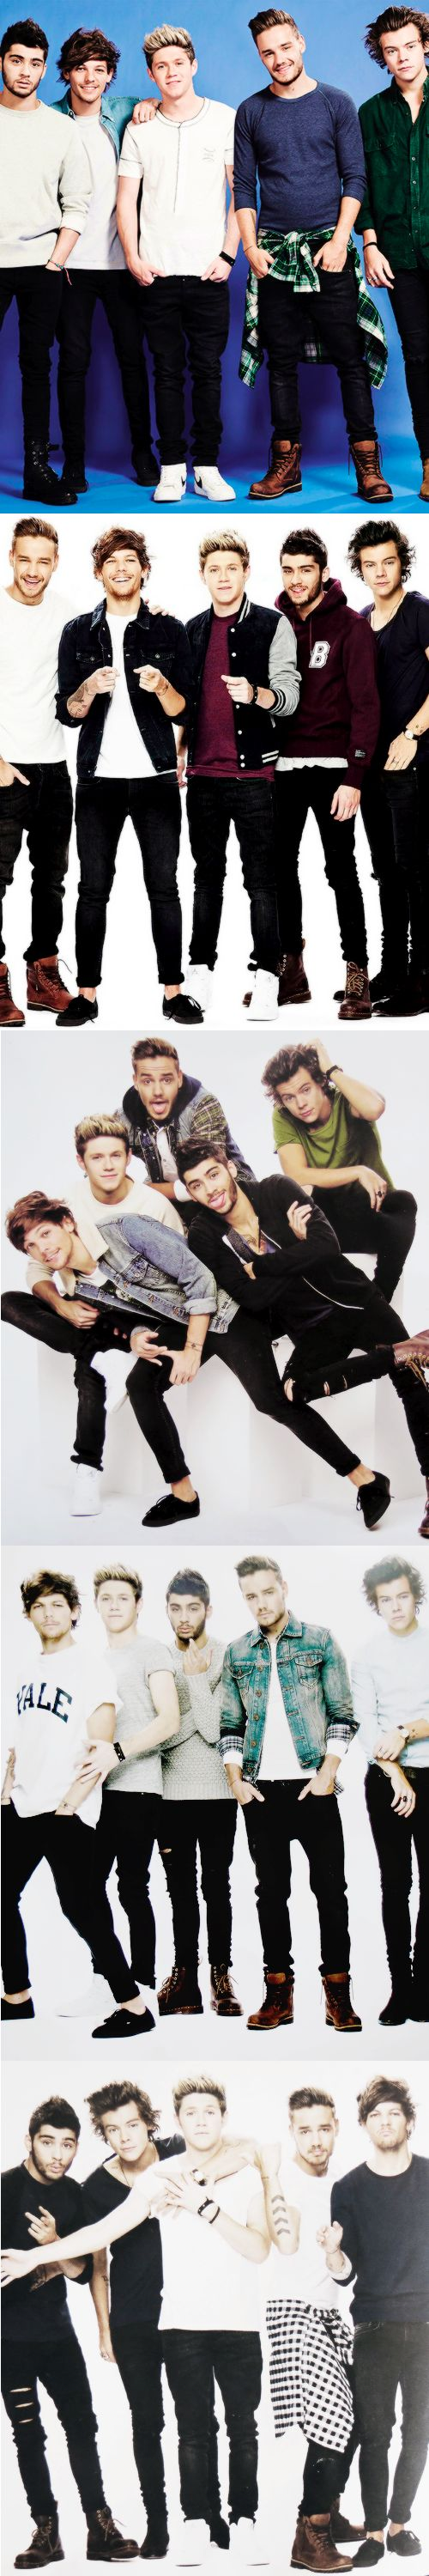 WHAT A GRAND PHOTO SHOOT WHEN CAN WE GET MERCH WITH THIS PHOTO SHOOT SERIOUSLY I WILL ACTUALLY PAY FOR IT